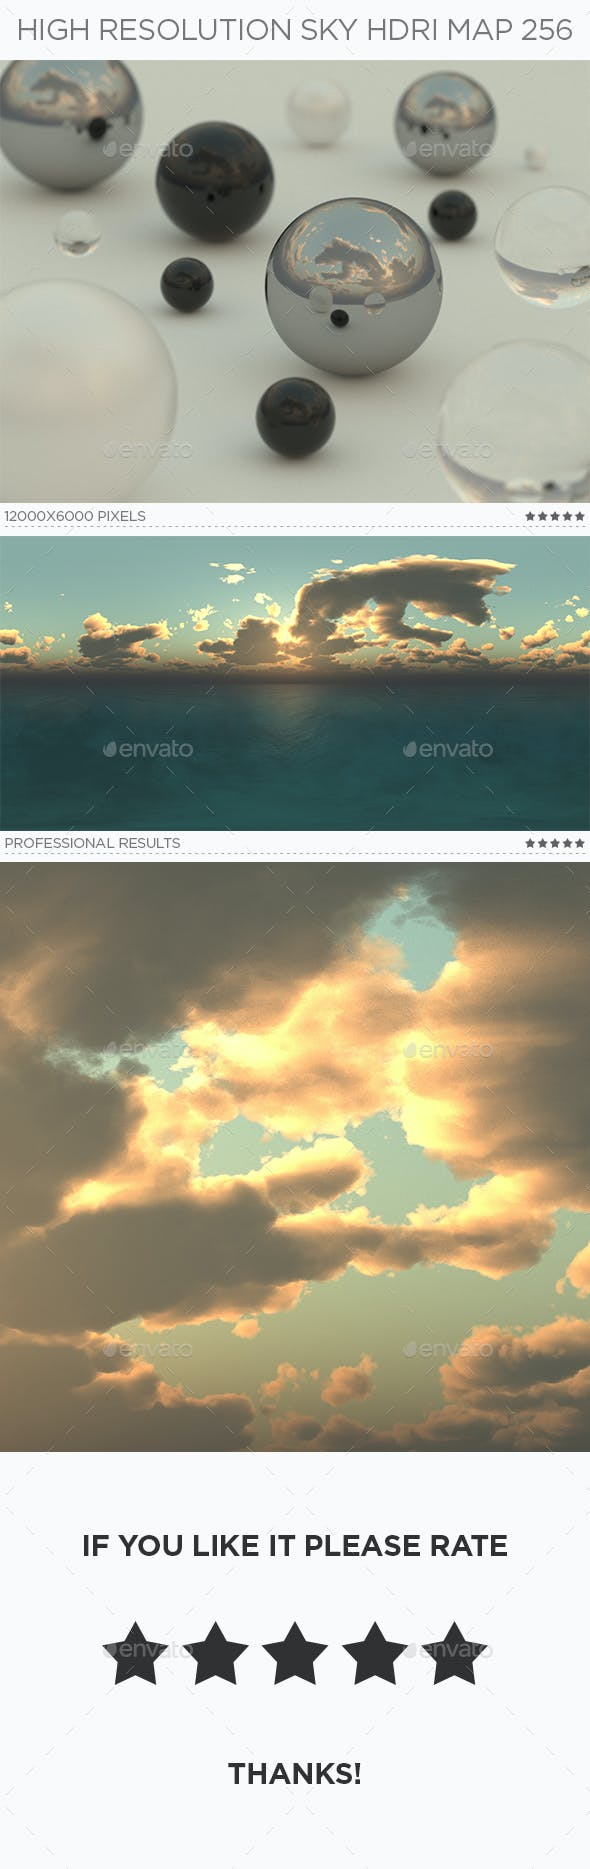 High Resolution Sky HDRi Map 256 - 3DOcean Item for Sale